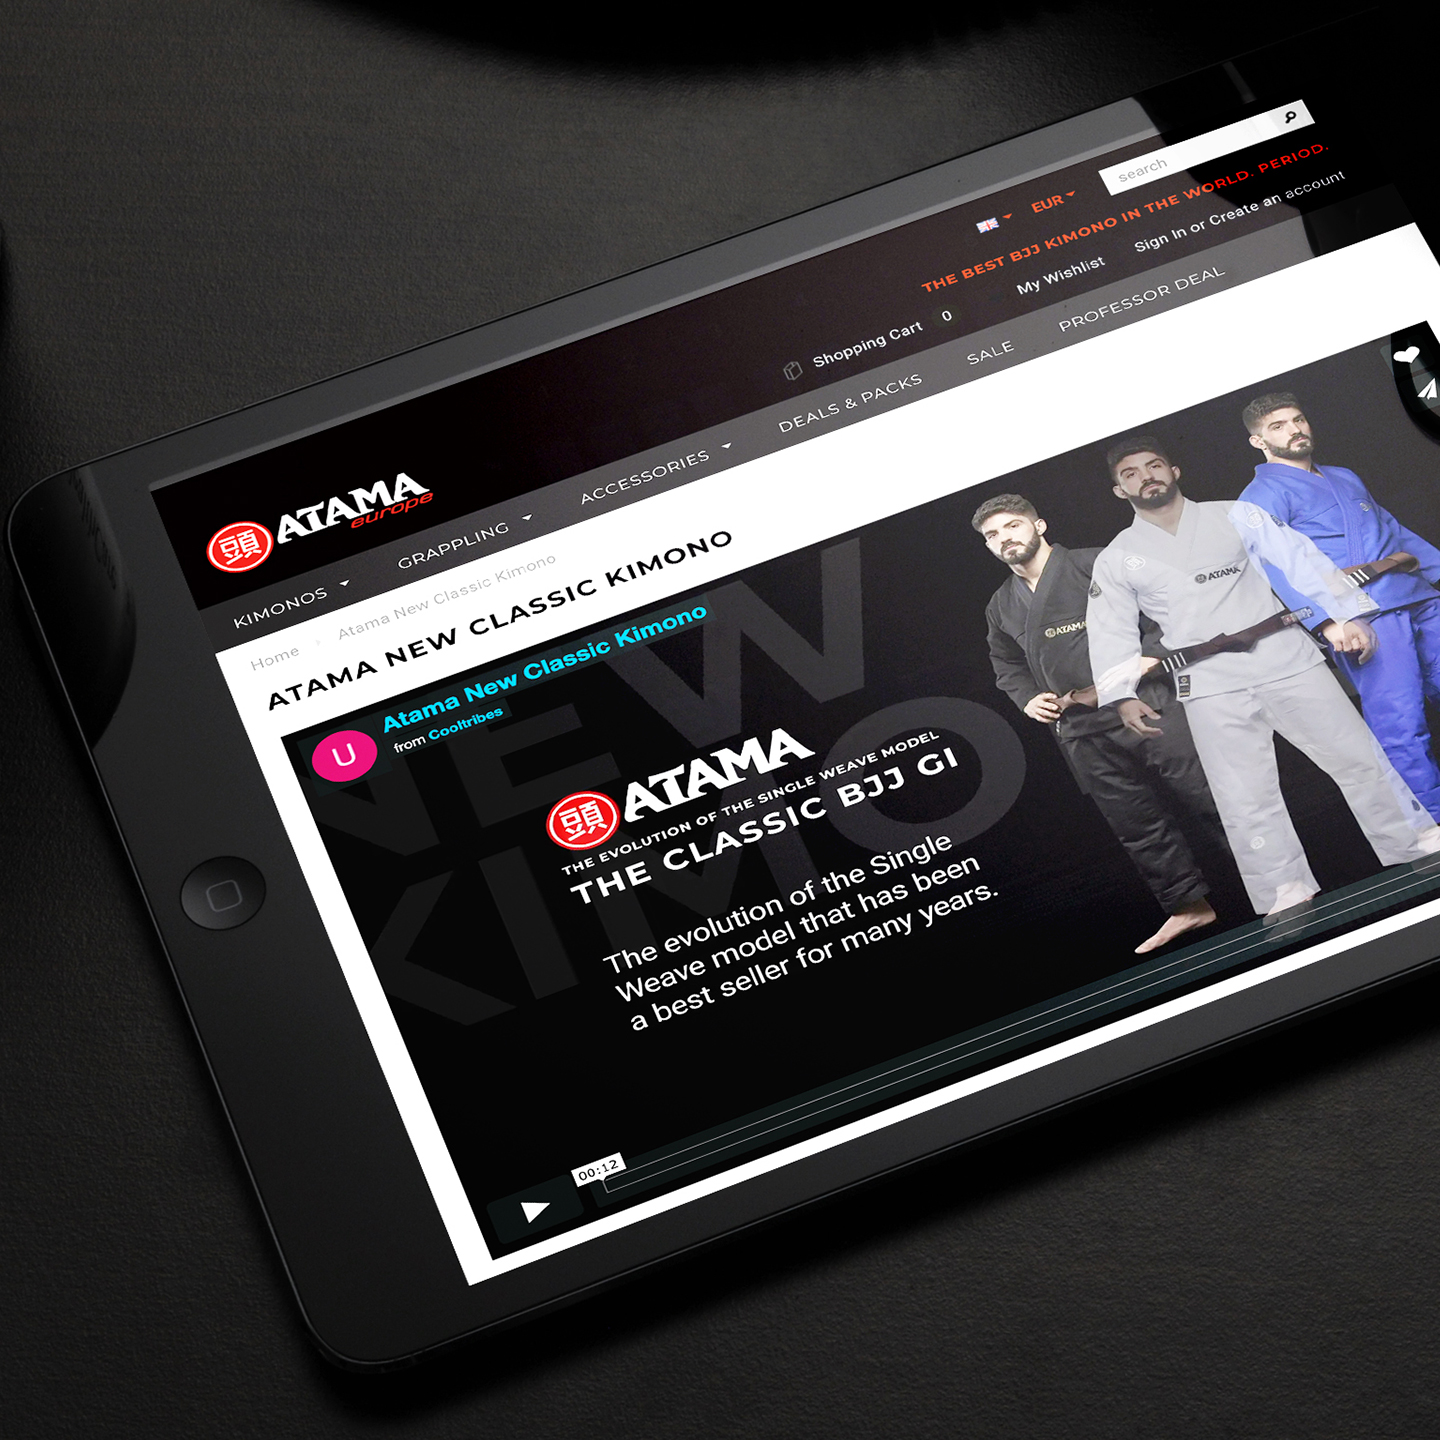 ATAMA website redesign for e-commerce